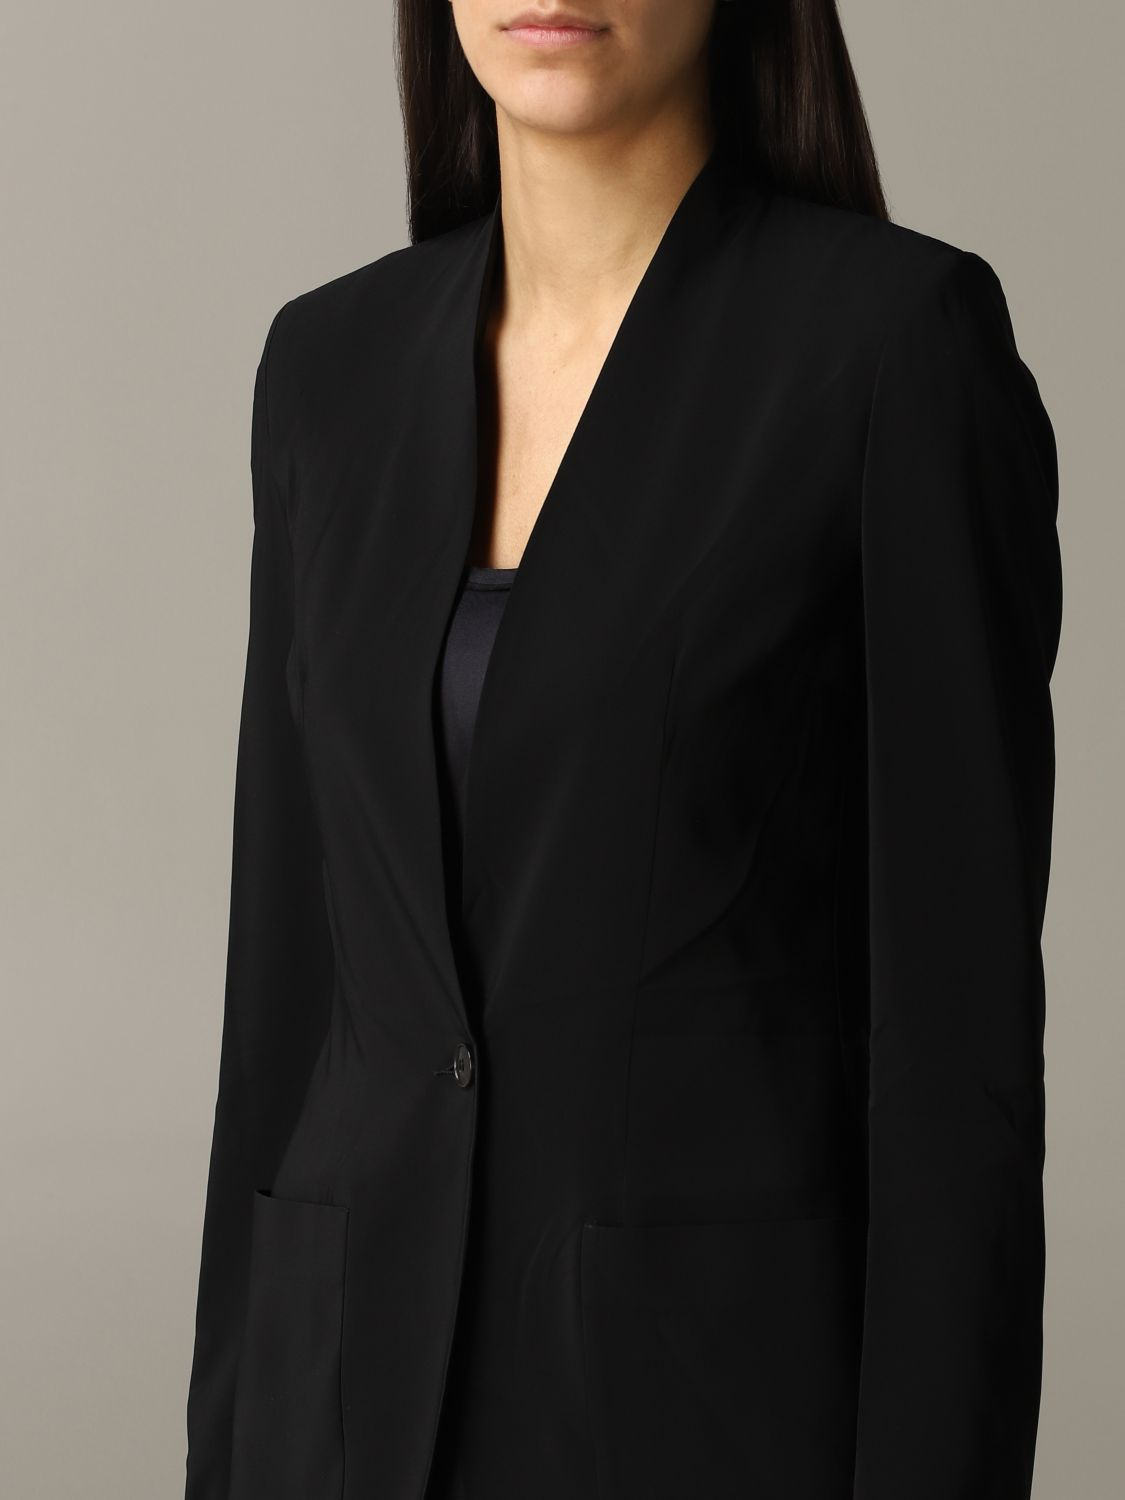 Jacket women Jucca black 5